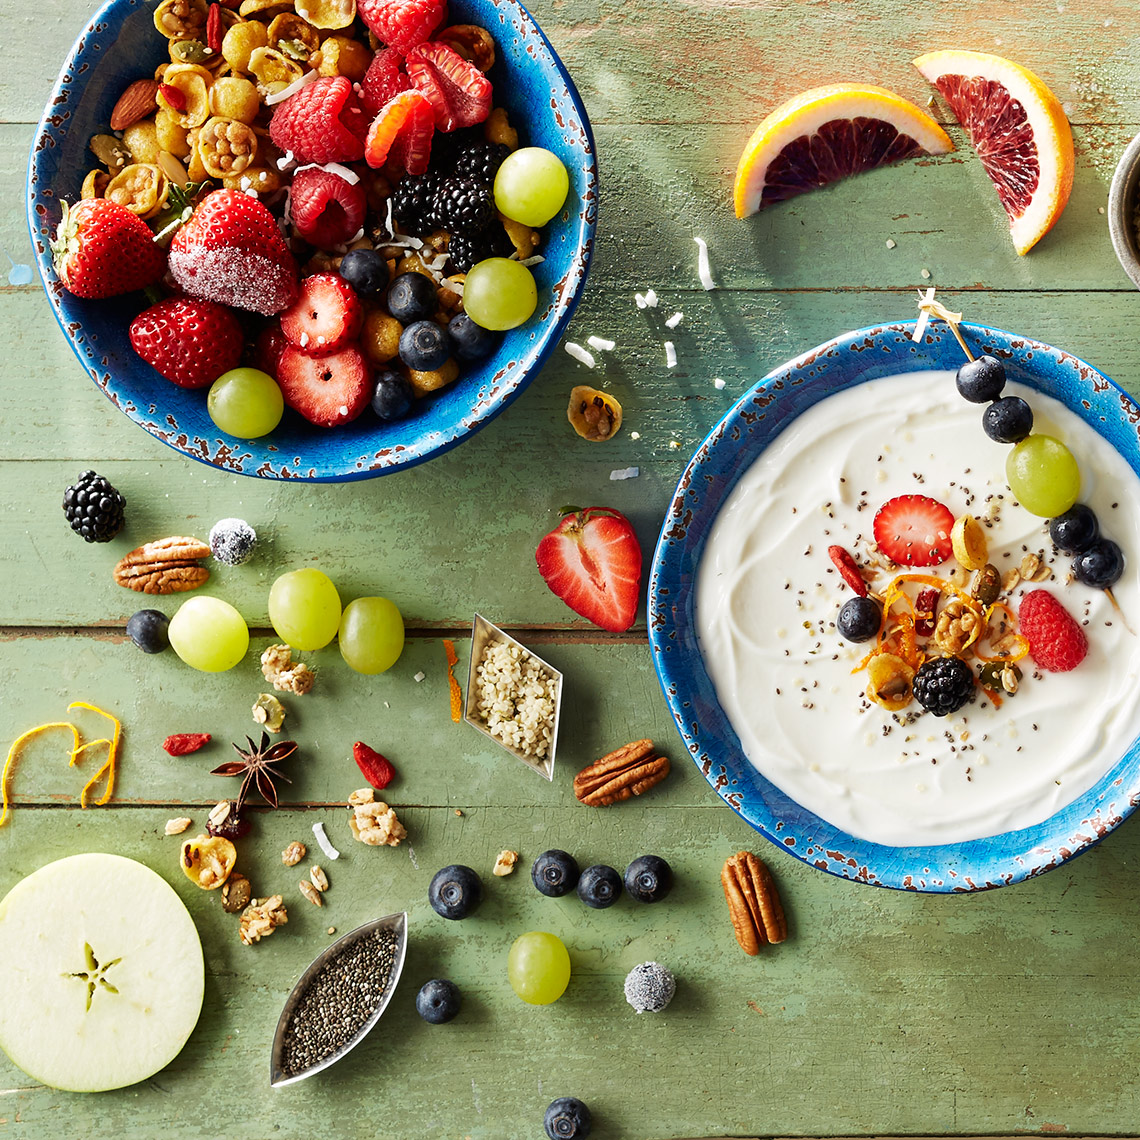 Yogurt,  Fruit, Berries,  Nuts